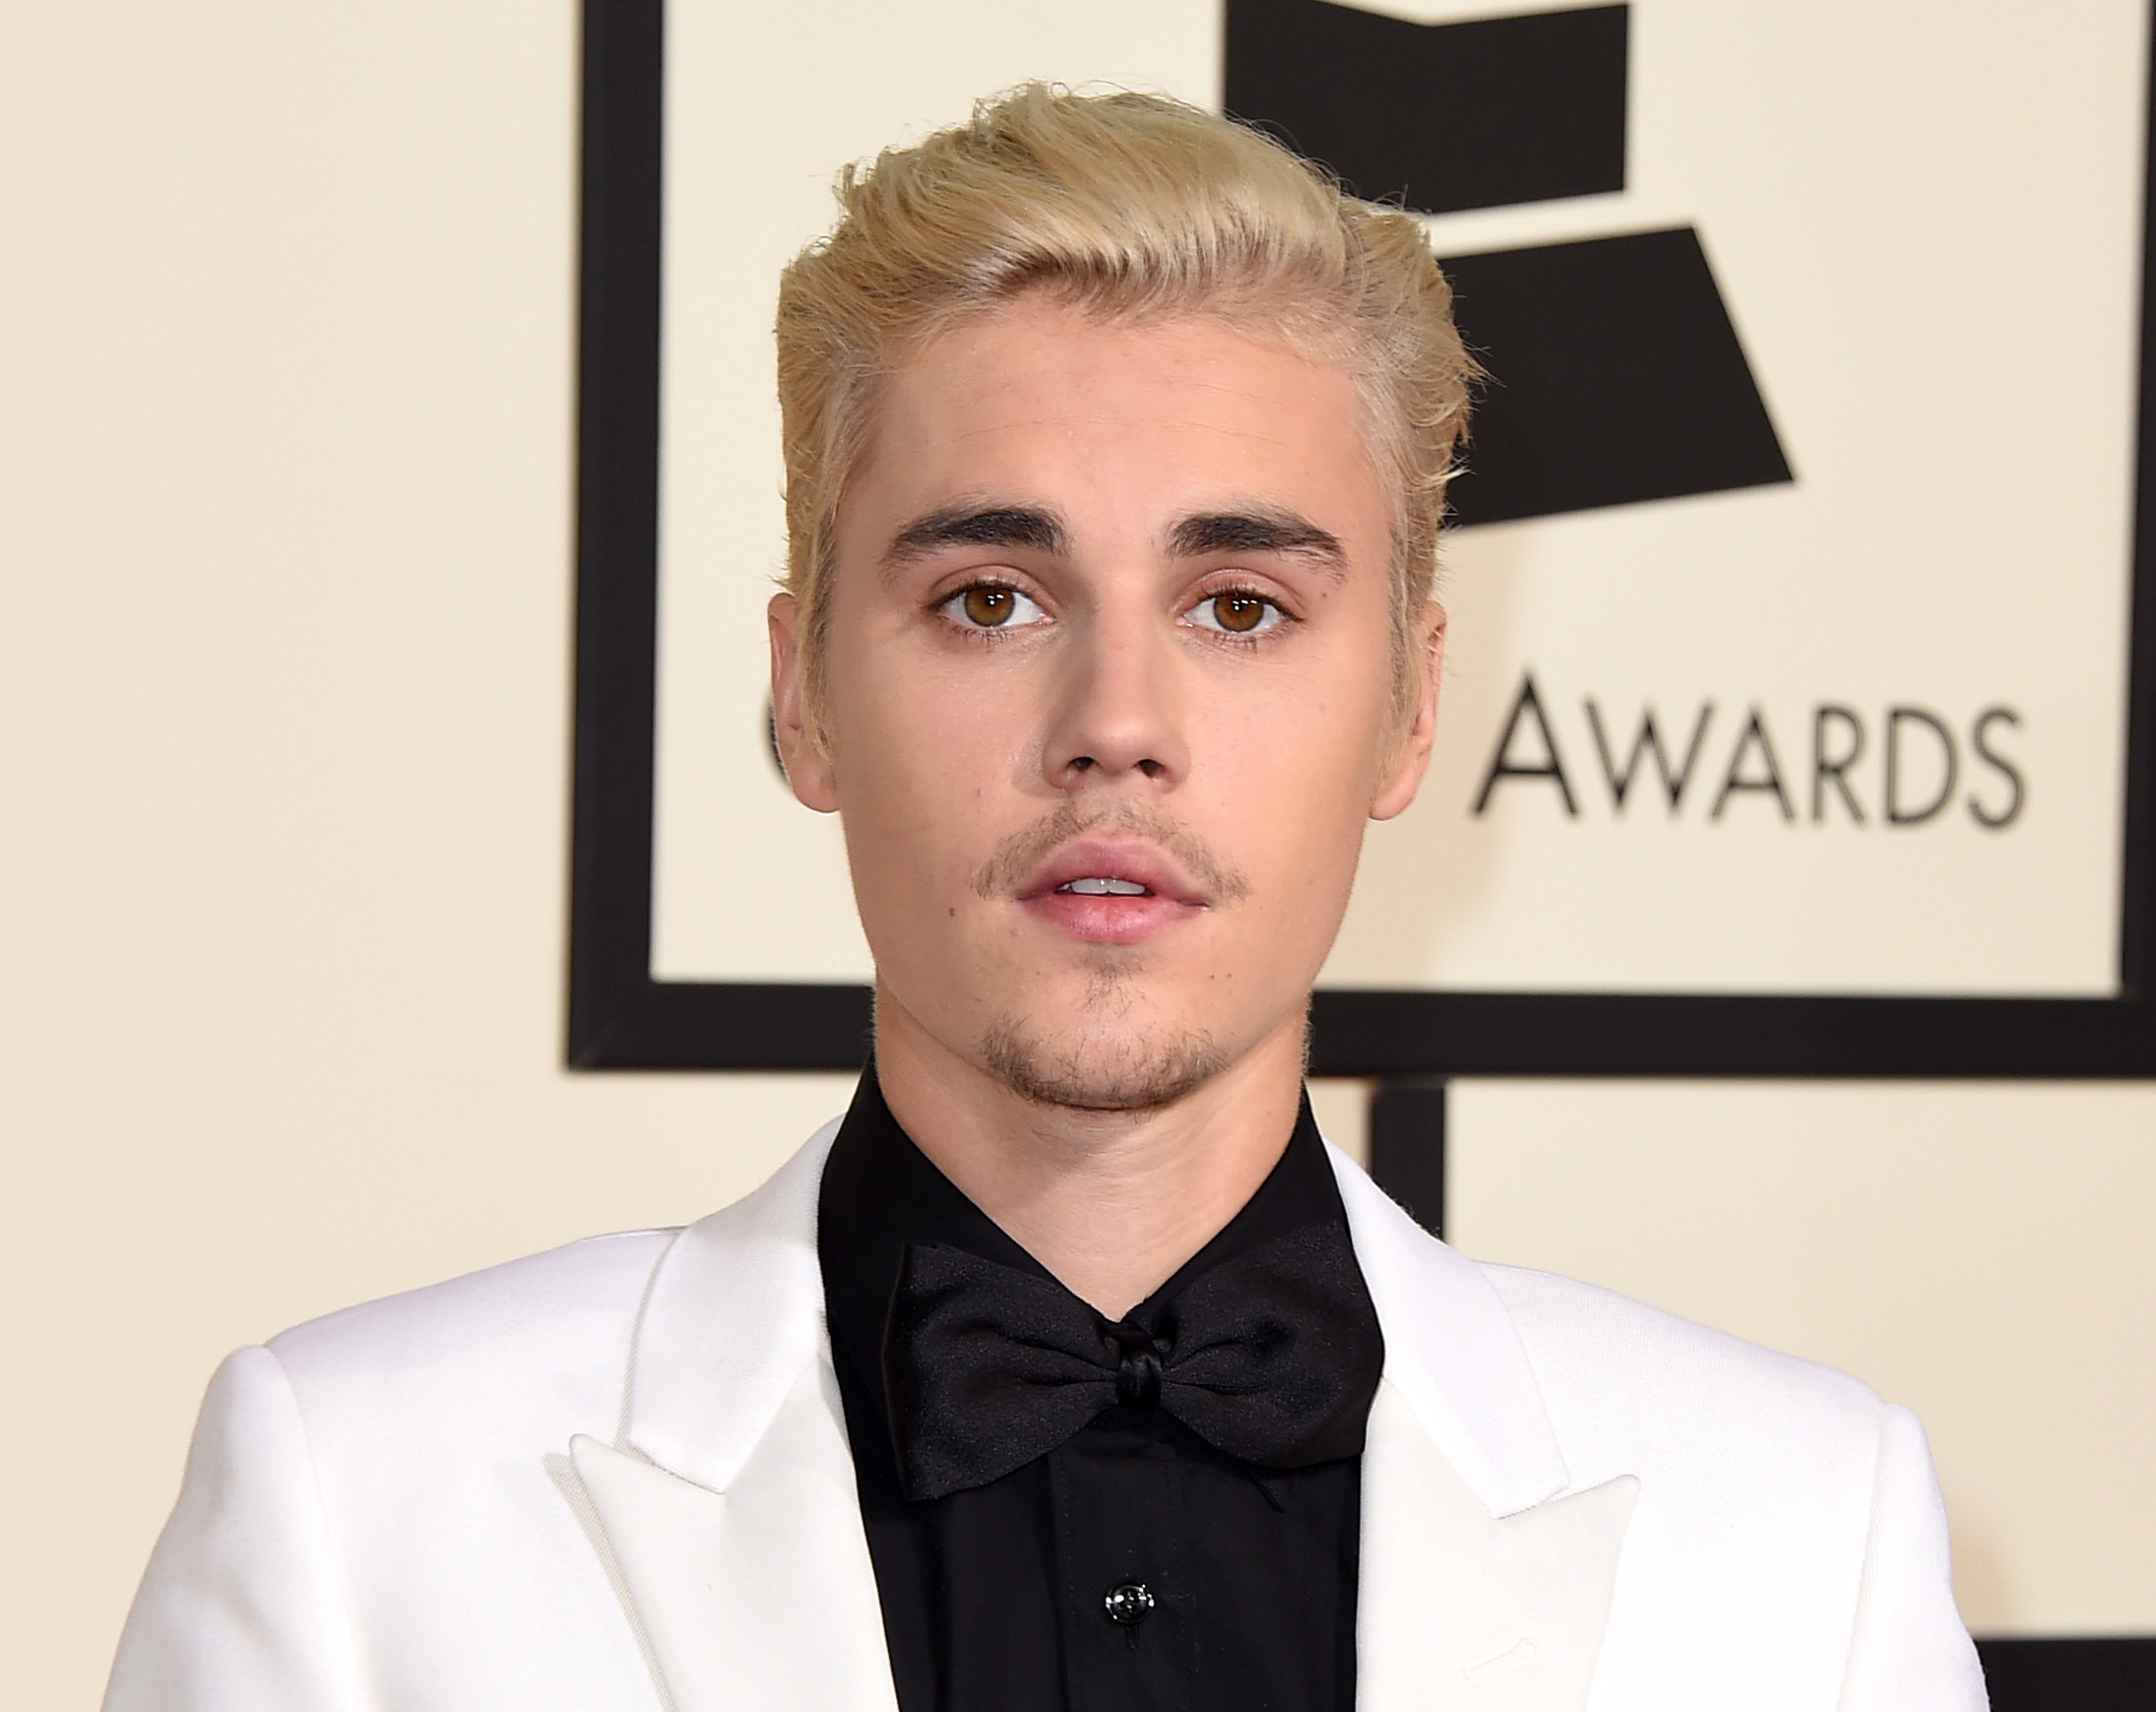 Bieber Sued For $100K For Being An Utter W*nker PA 25845854